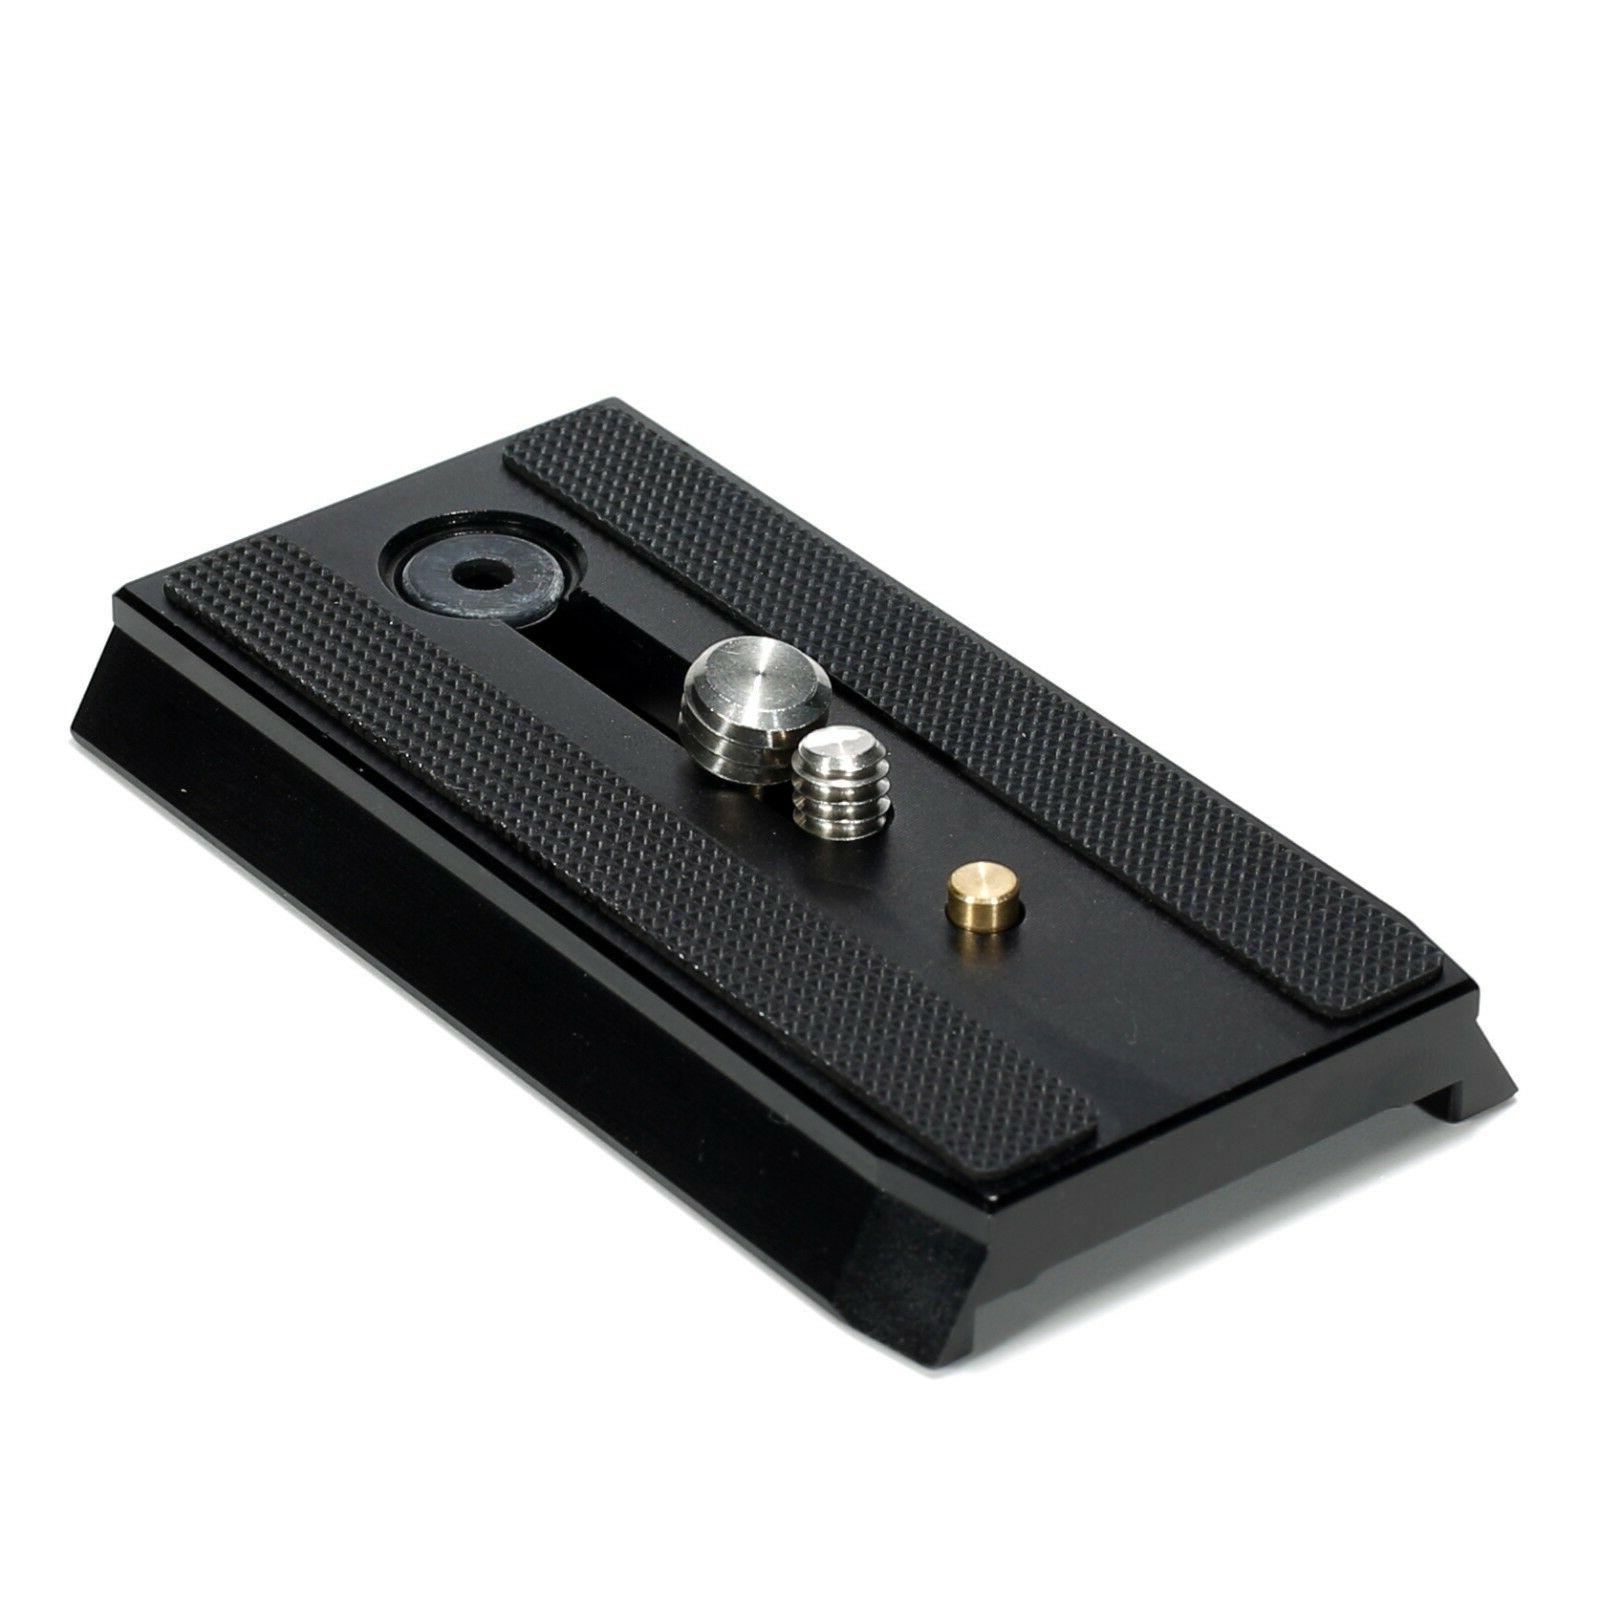 501PL Sliding Quick Release Plate Fr Manfrotto 501HDV 503HDV